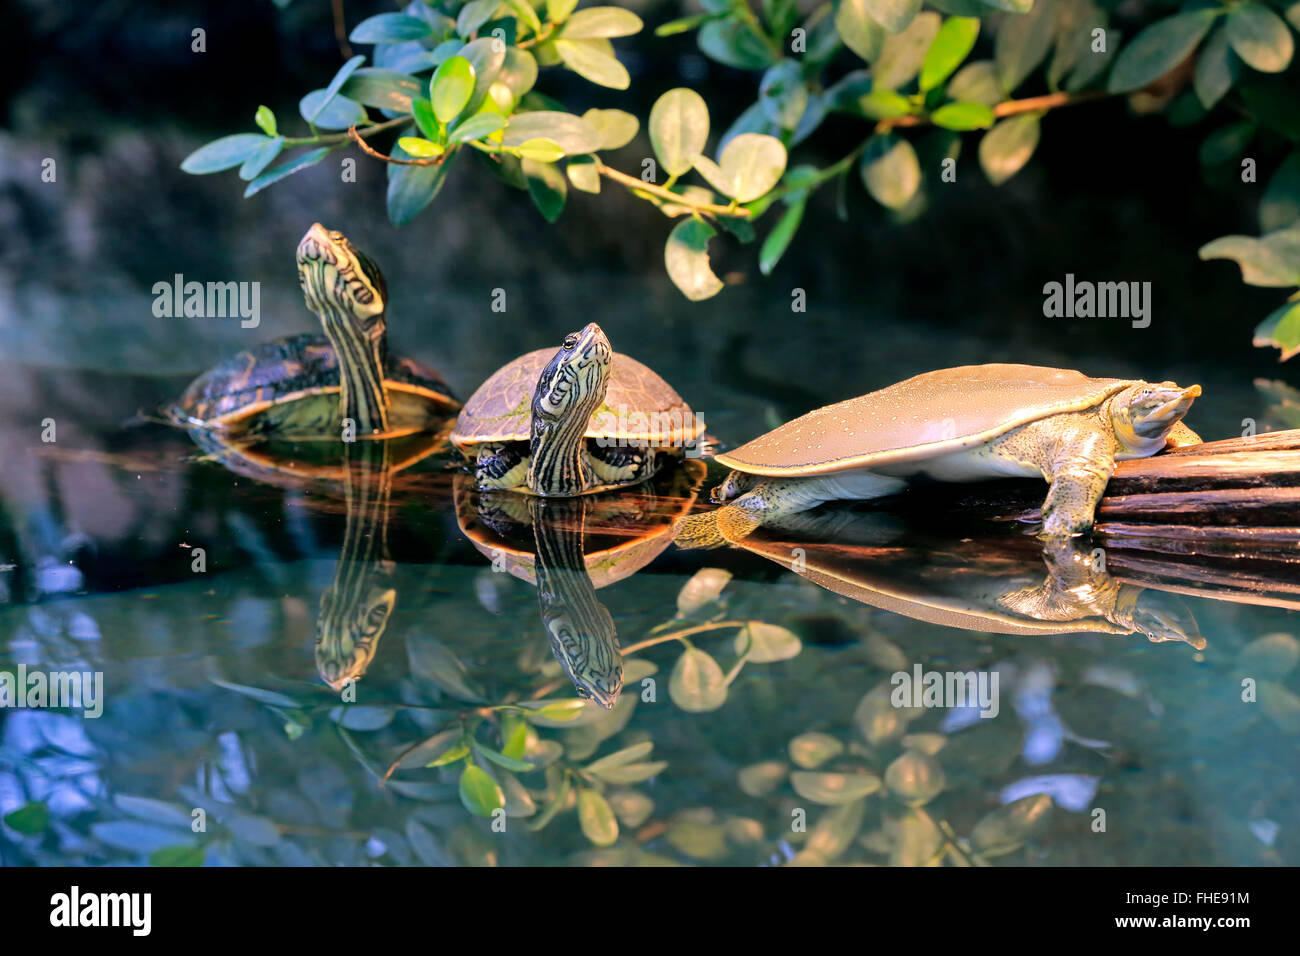 Spiny softshell turtle/, group of adults, North America / (Apalone spinifera) - Stock Image